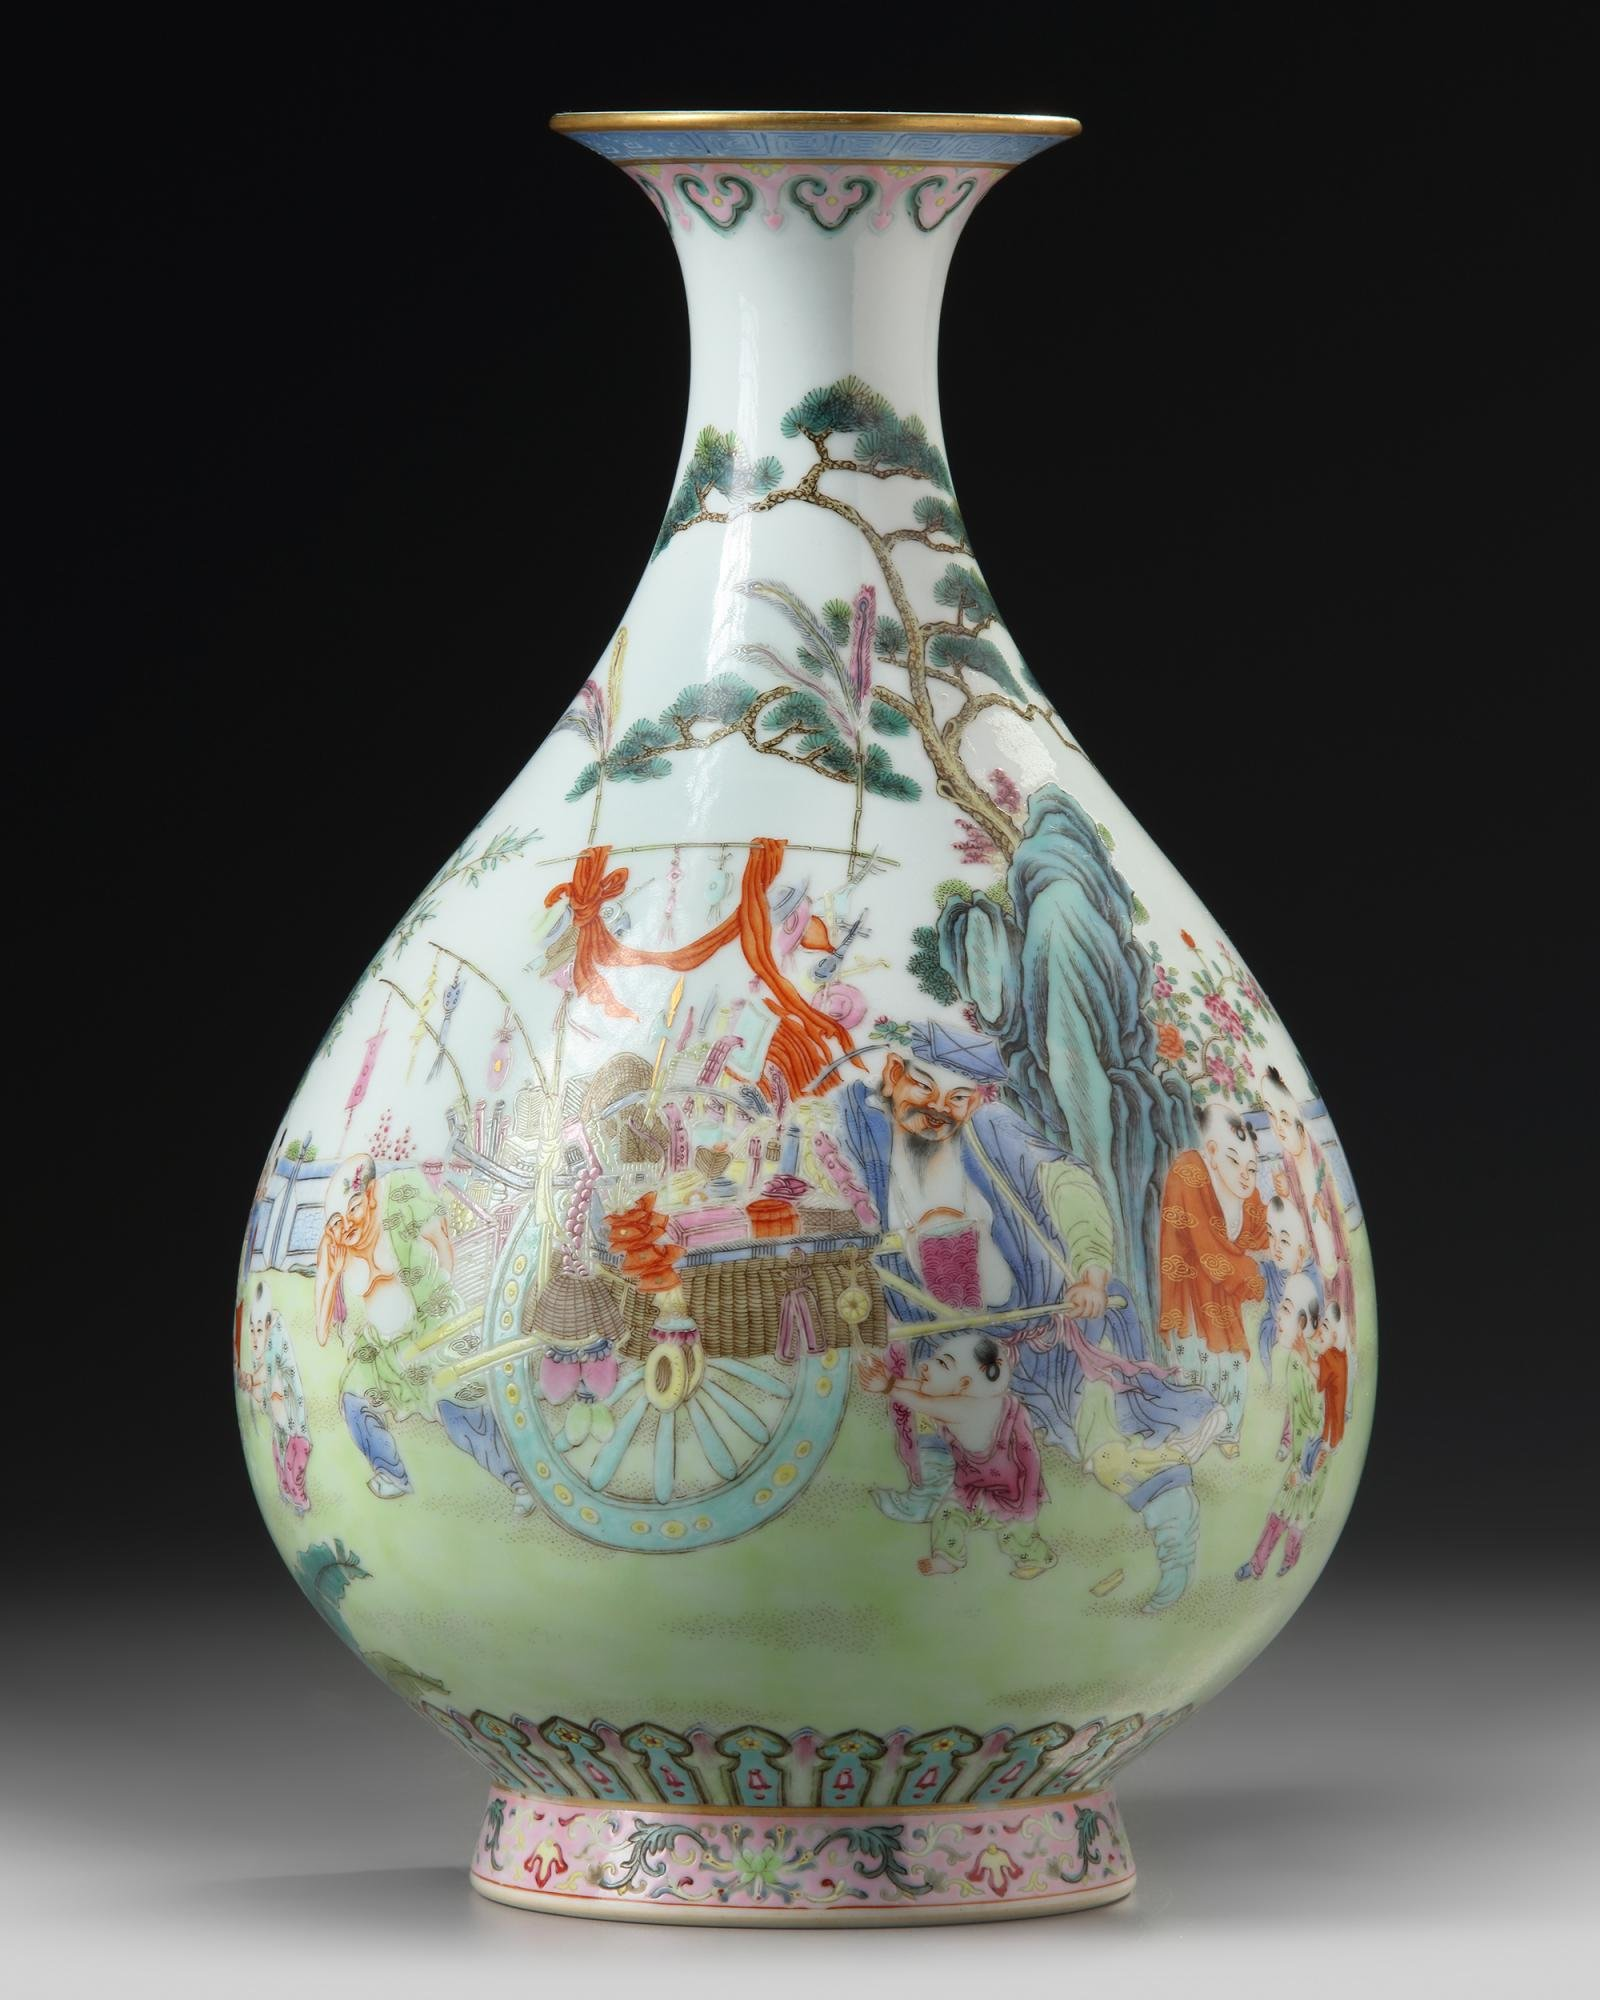 A CHINESE FAMILLE ROSE 'BOYS' VASE, CHINA, QING DYNASTY